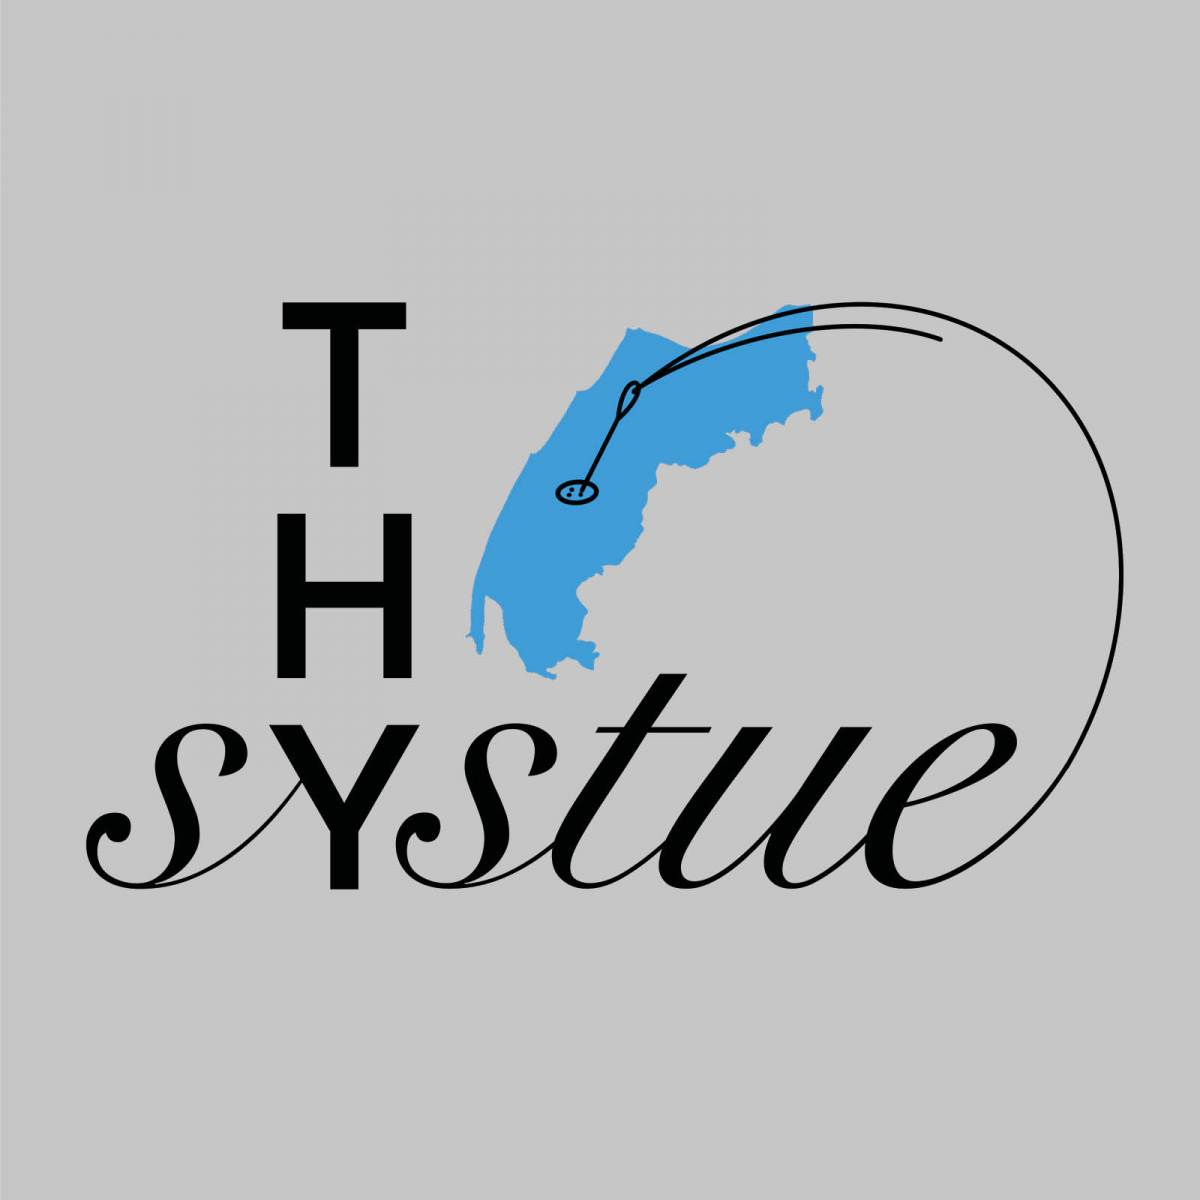 Thy Systue - logo